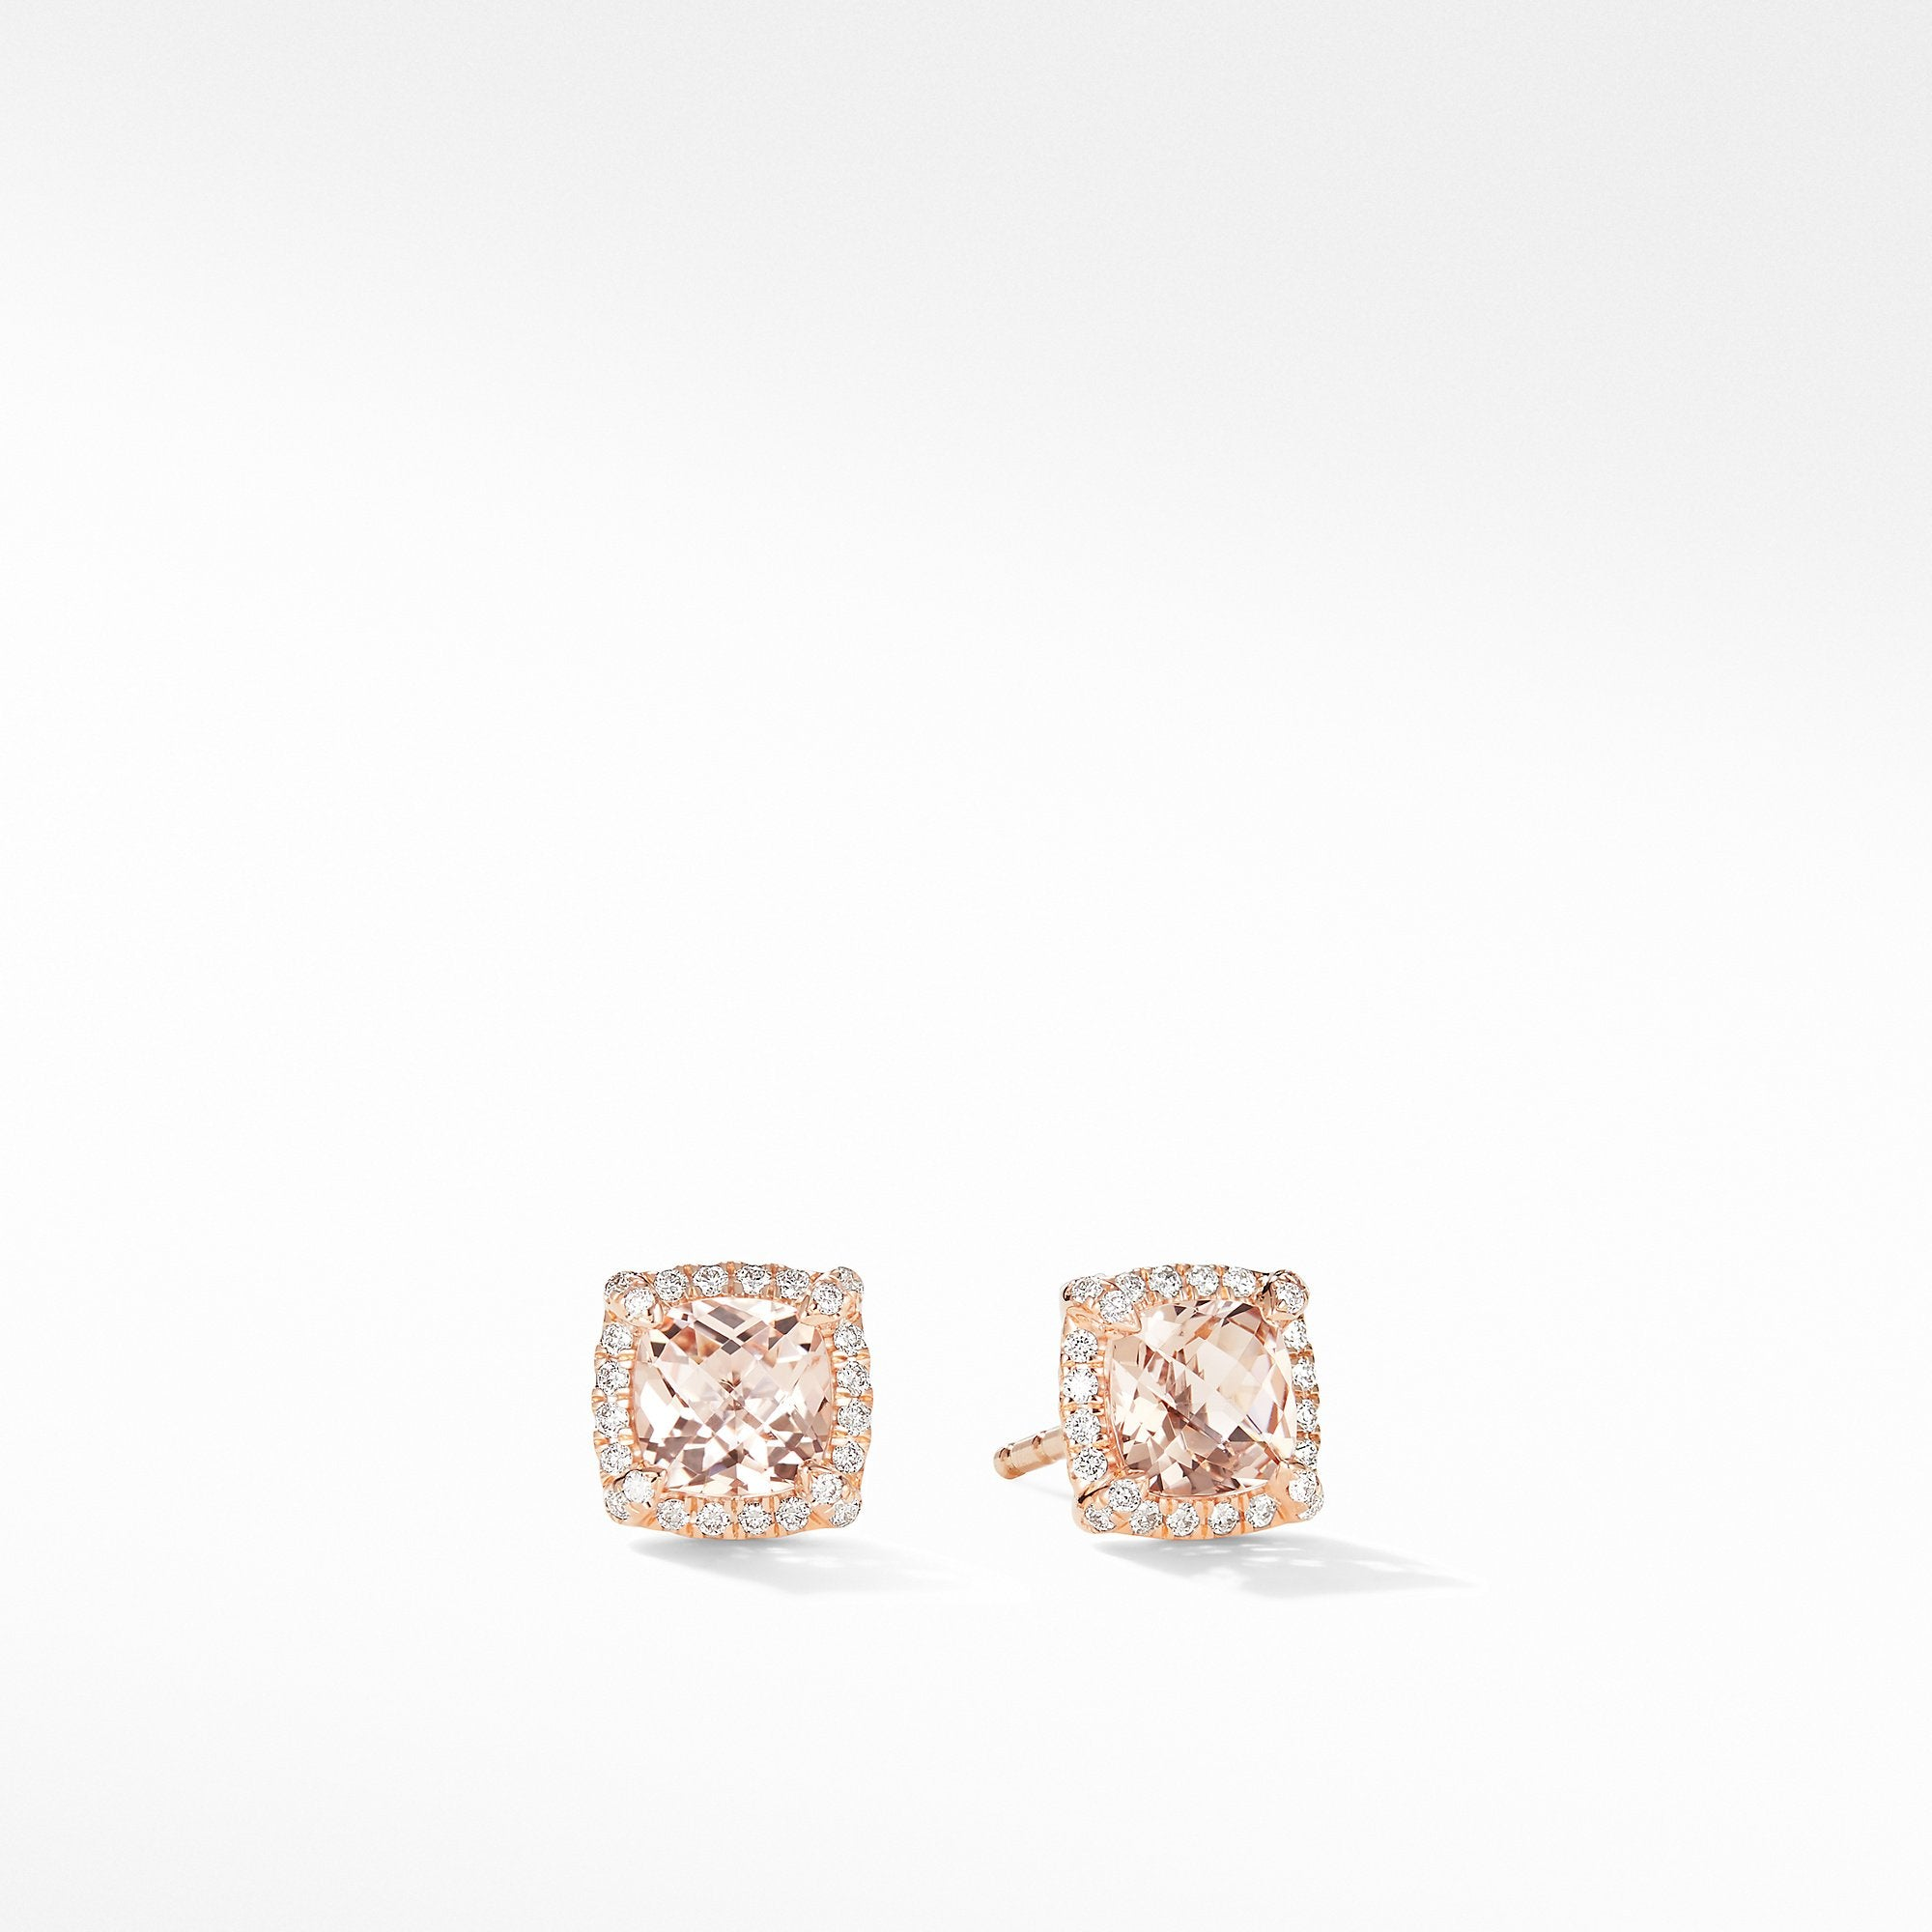 Petite Chatelaine® Pavé Bezel Stud Earrings in 18K Rose Gold with Morganite